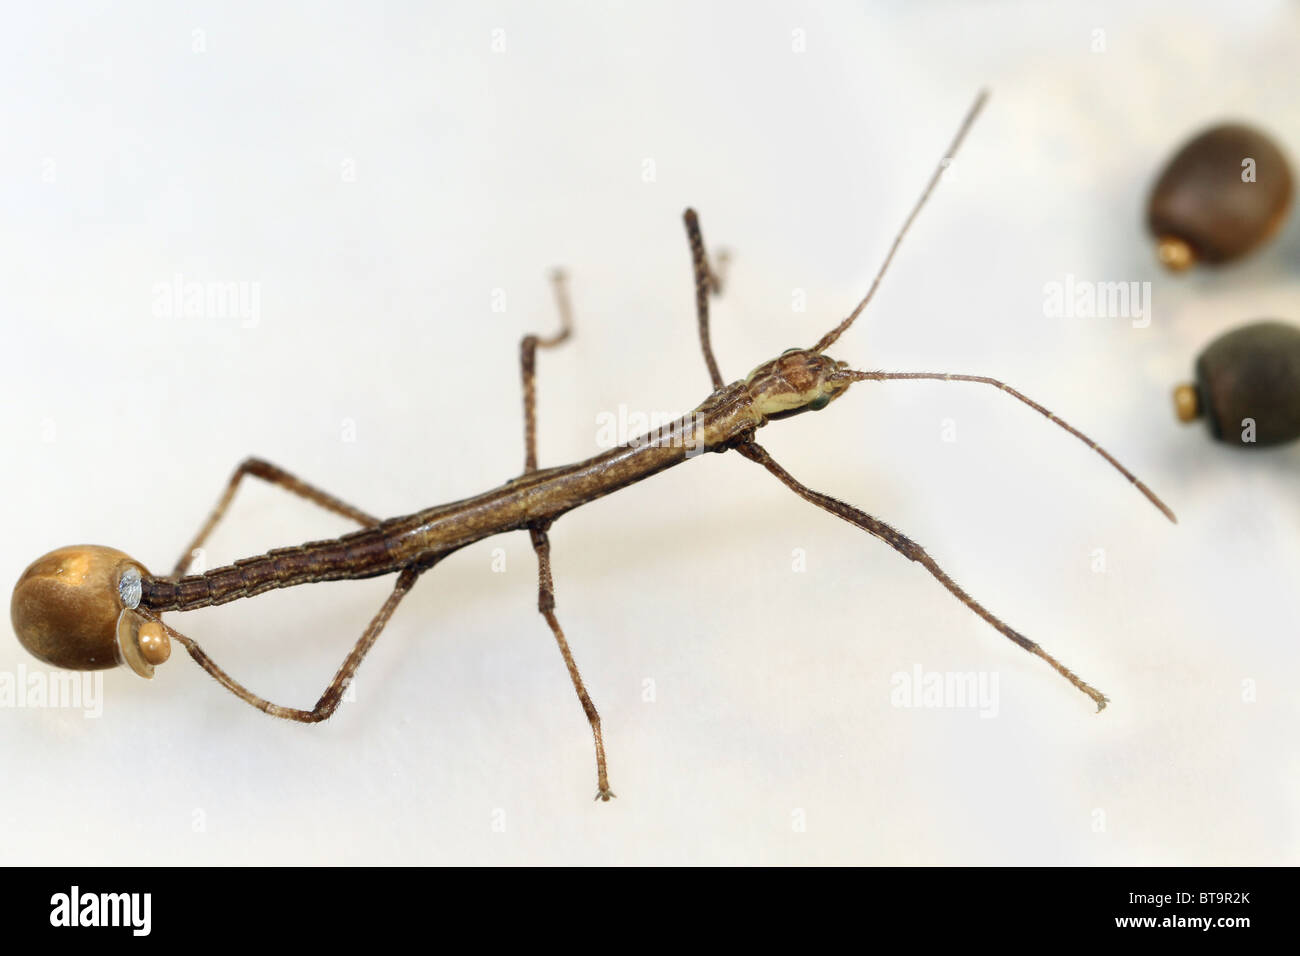 Walking Stick Insect Stock Photos & Walking Stick Insect Stock